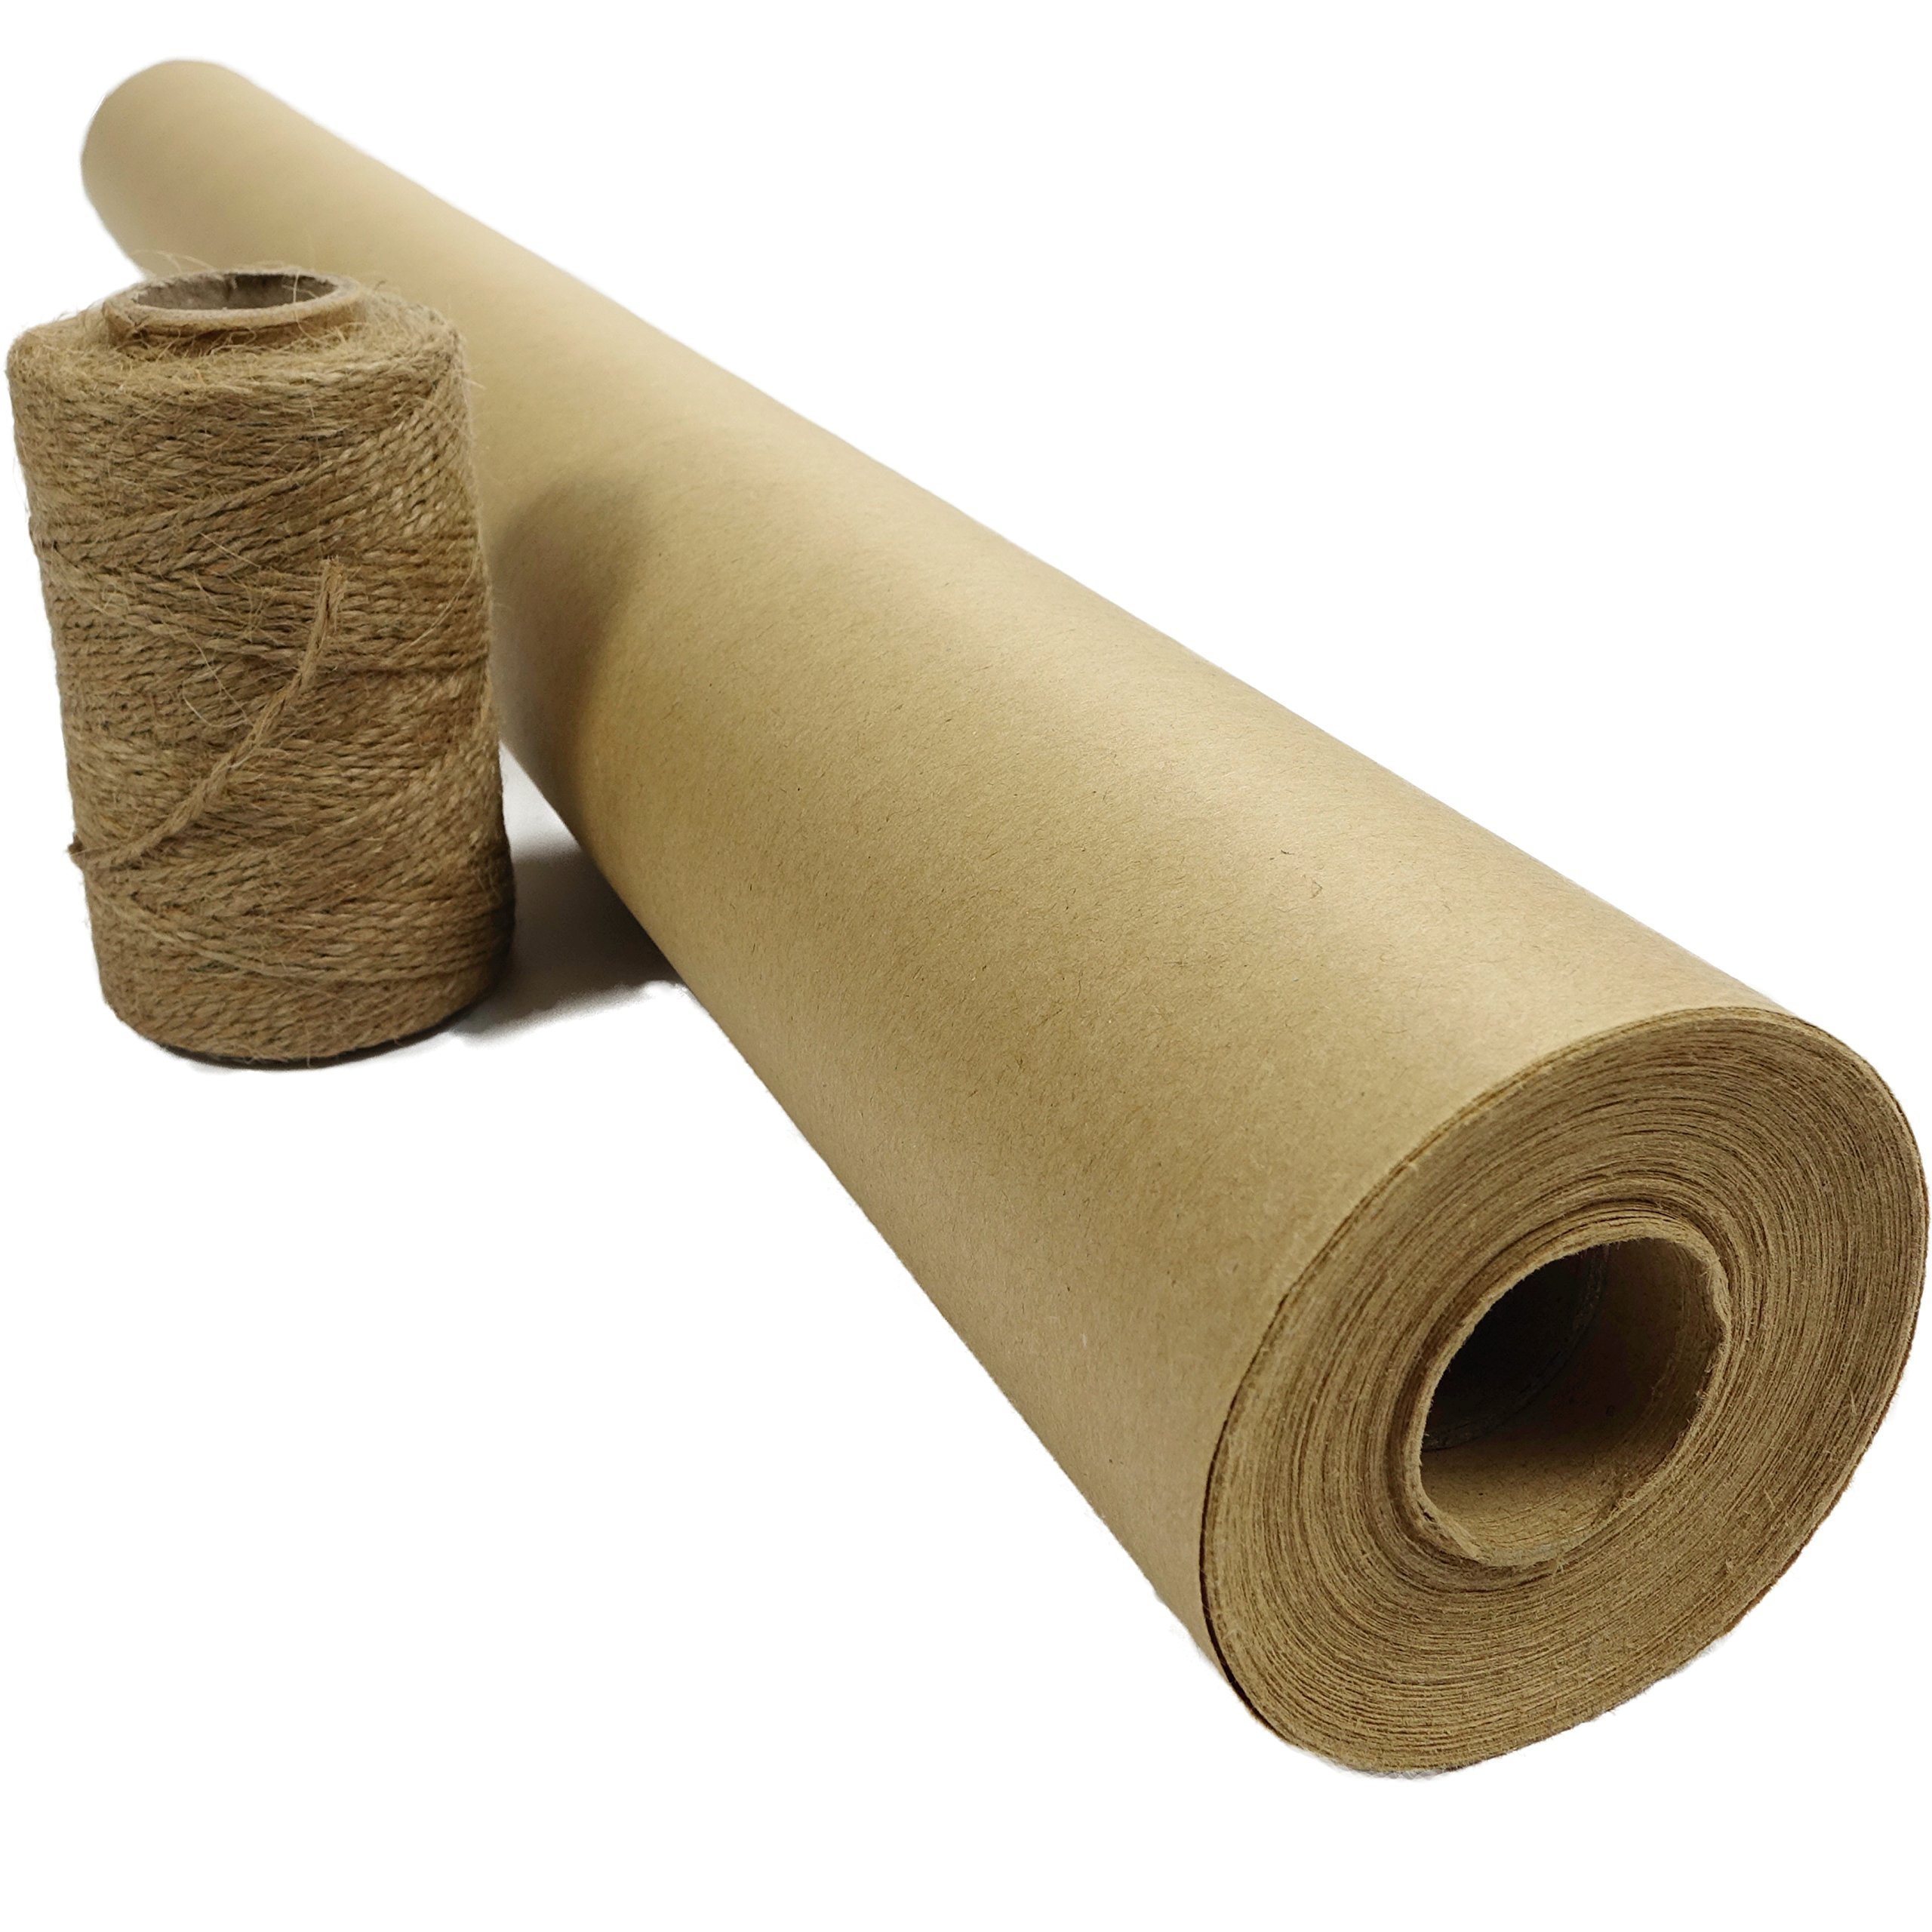 """Blami Arts Brown Kraft Paper Roll for Gift Wrapping - Jumbo 30"""" x 1200"""" (100 ft) XL - Thickness 50 - Recycled Made in USA with Jute Twine"""